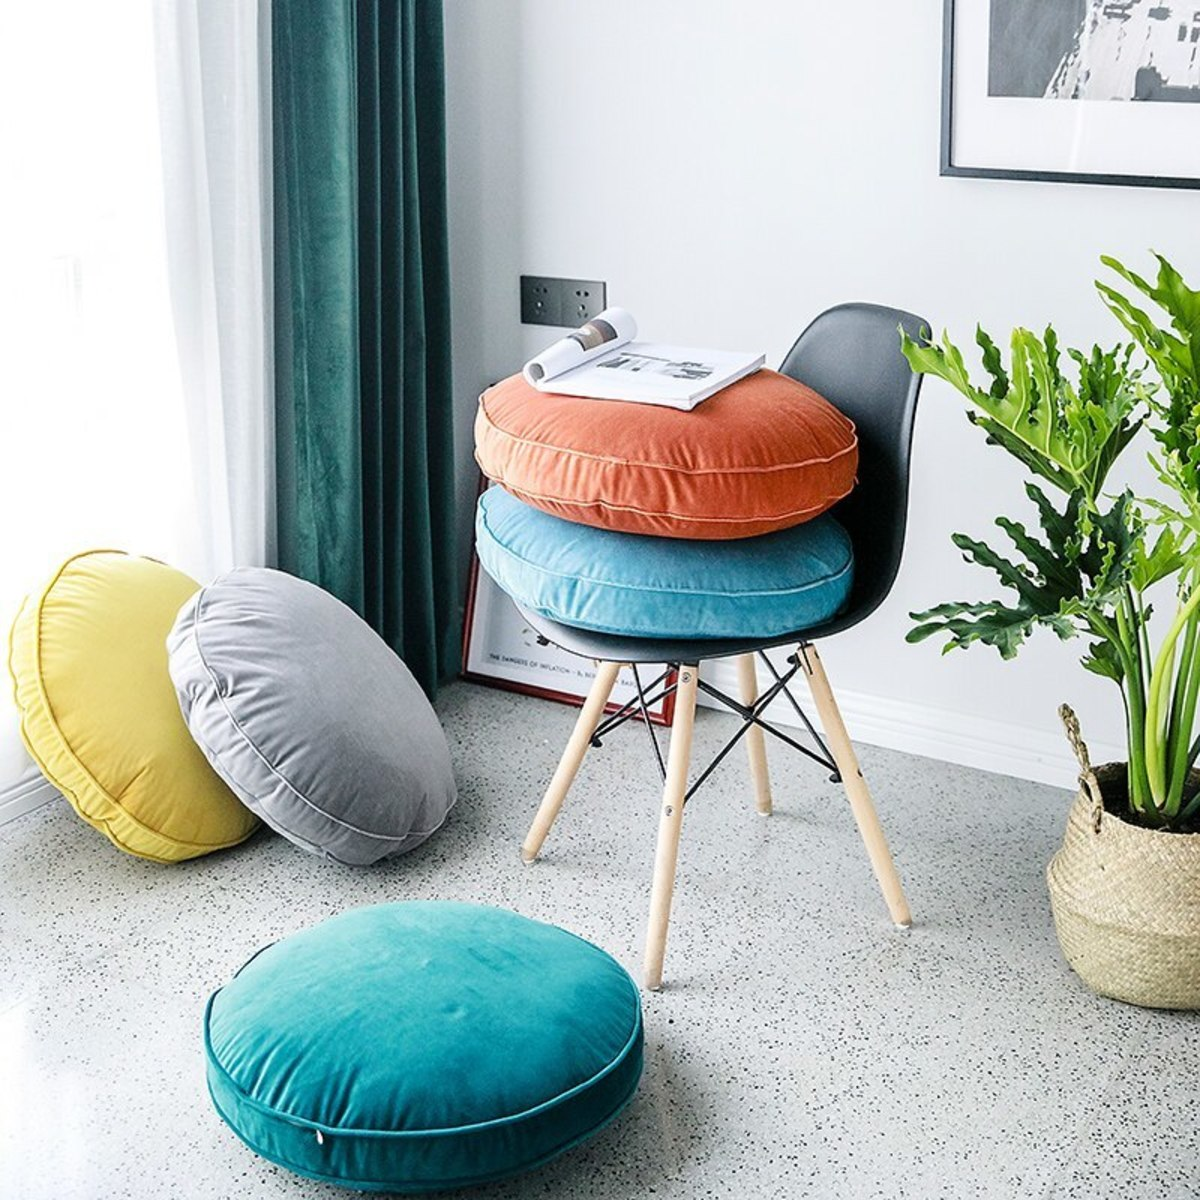 how-to-choose-round-chair-cushions